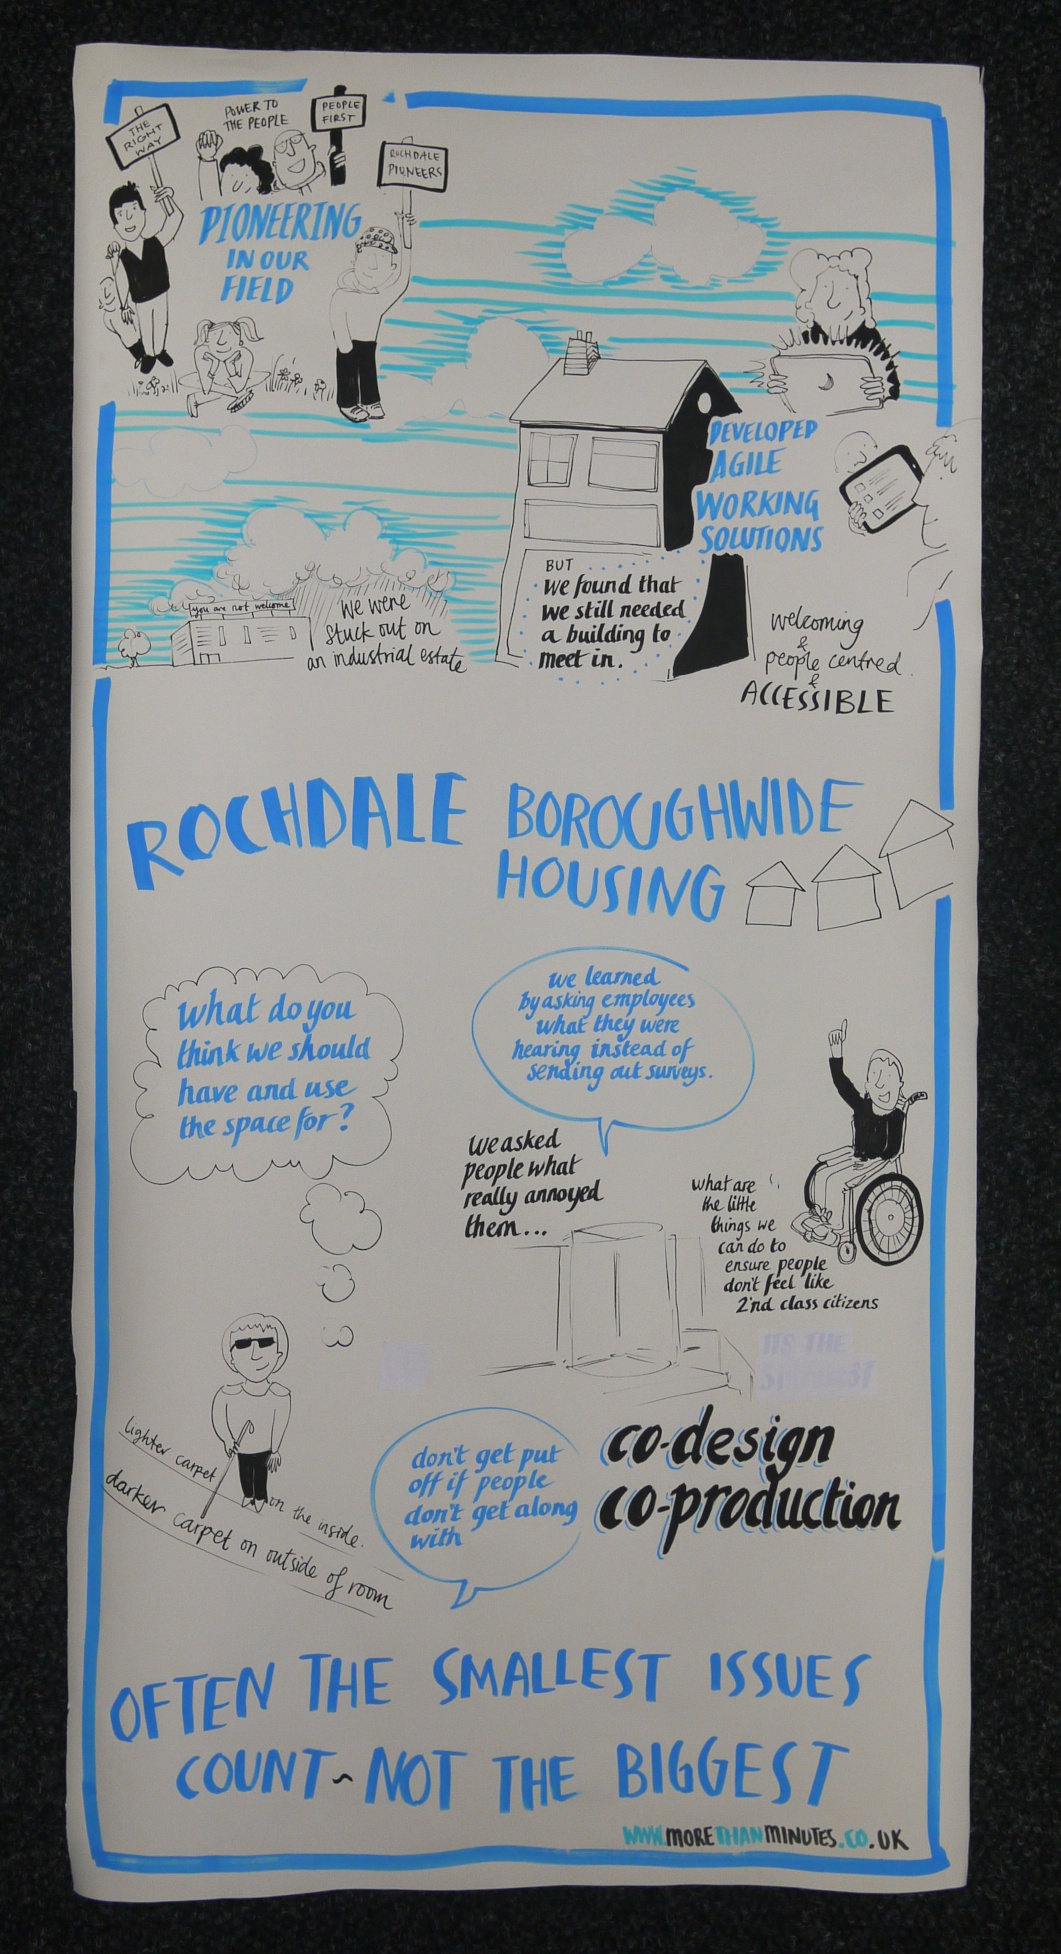 Rochdale Boroughwide Housing - often the smallest issues count not the biggest